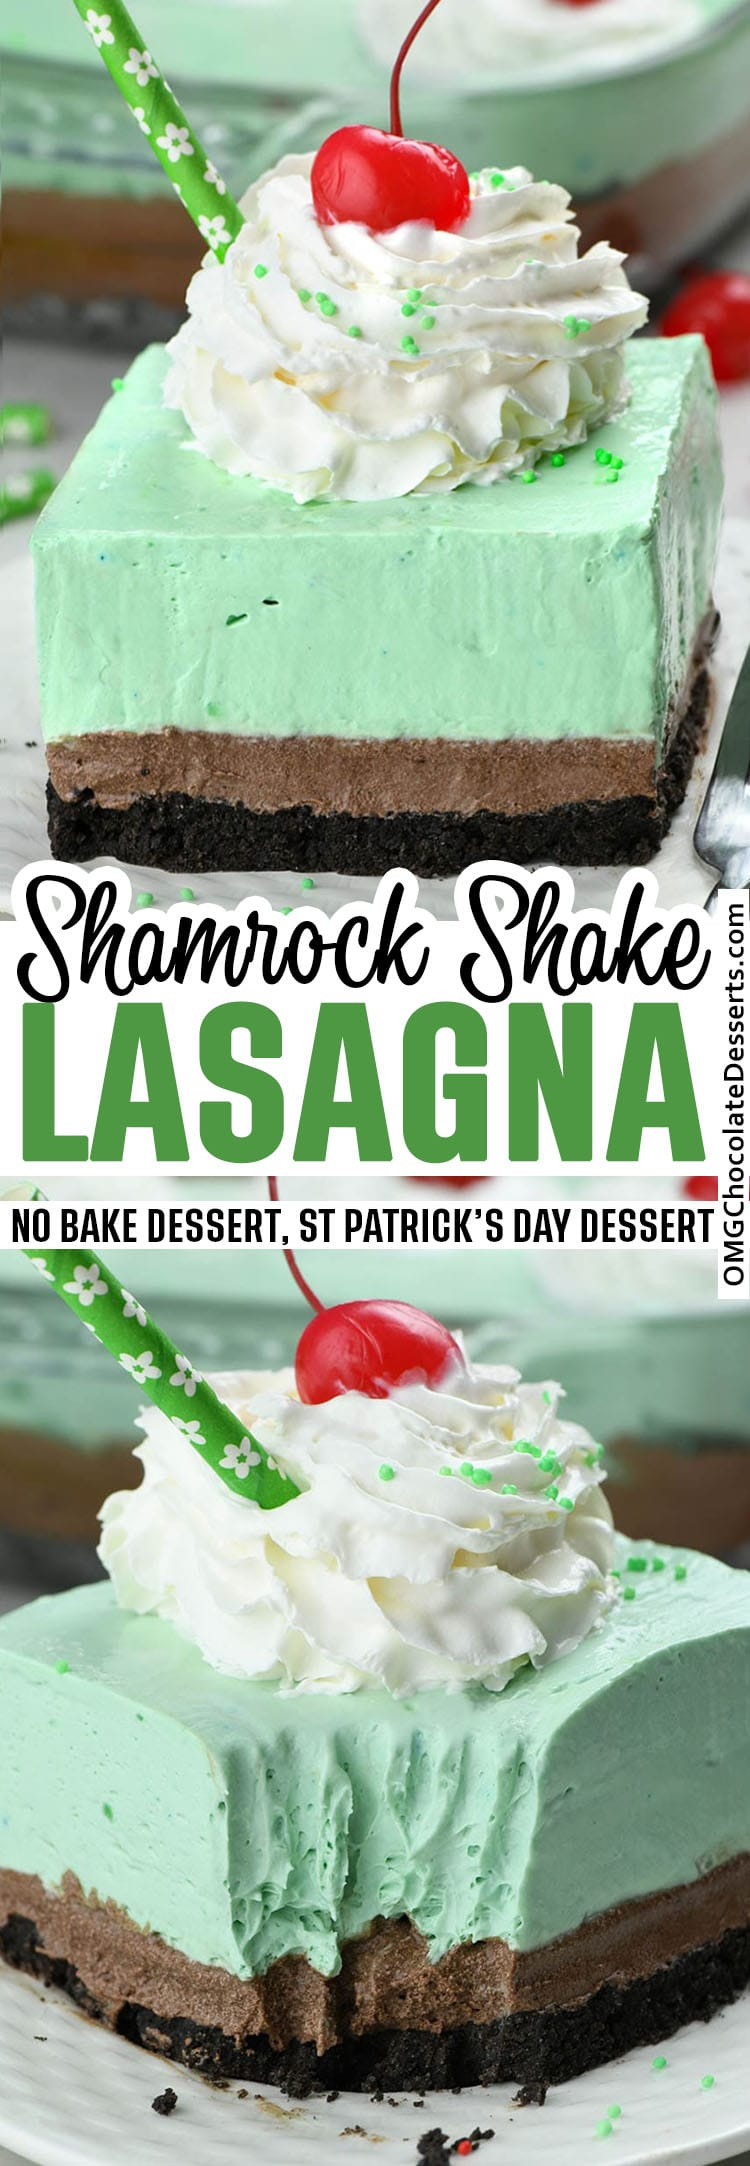 Shamrock Shake Lasagna is festive St Patrick's Day treat, even if you don't do much to celebrate it. Sweet, minty and creamy, this Shamrock Shake Lasagna is the perfect dessert to bring to a potluck or holiday gathering!